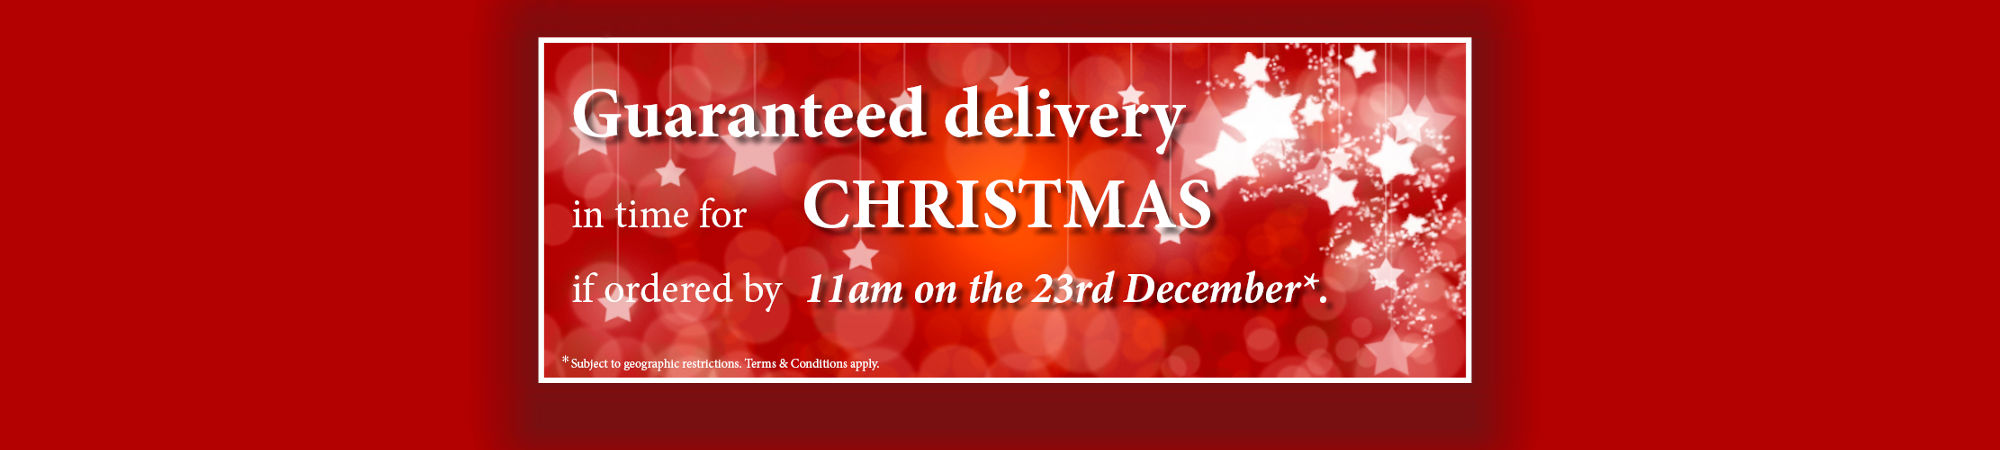 Fairmont & Main Christmas Delivery